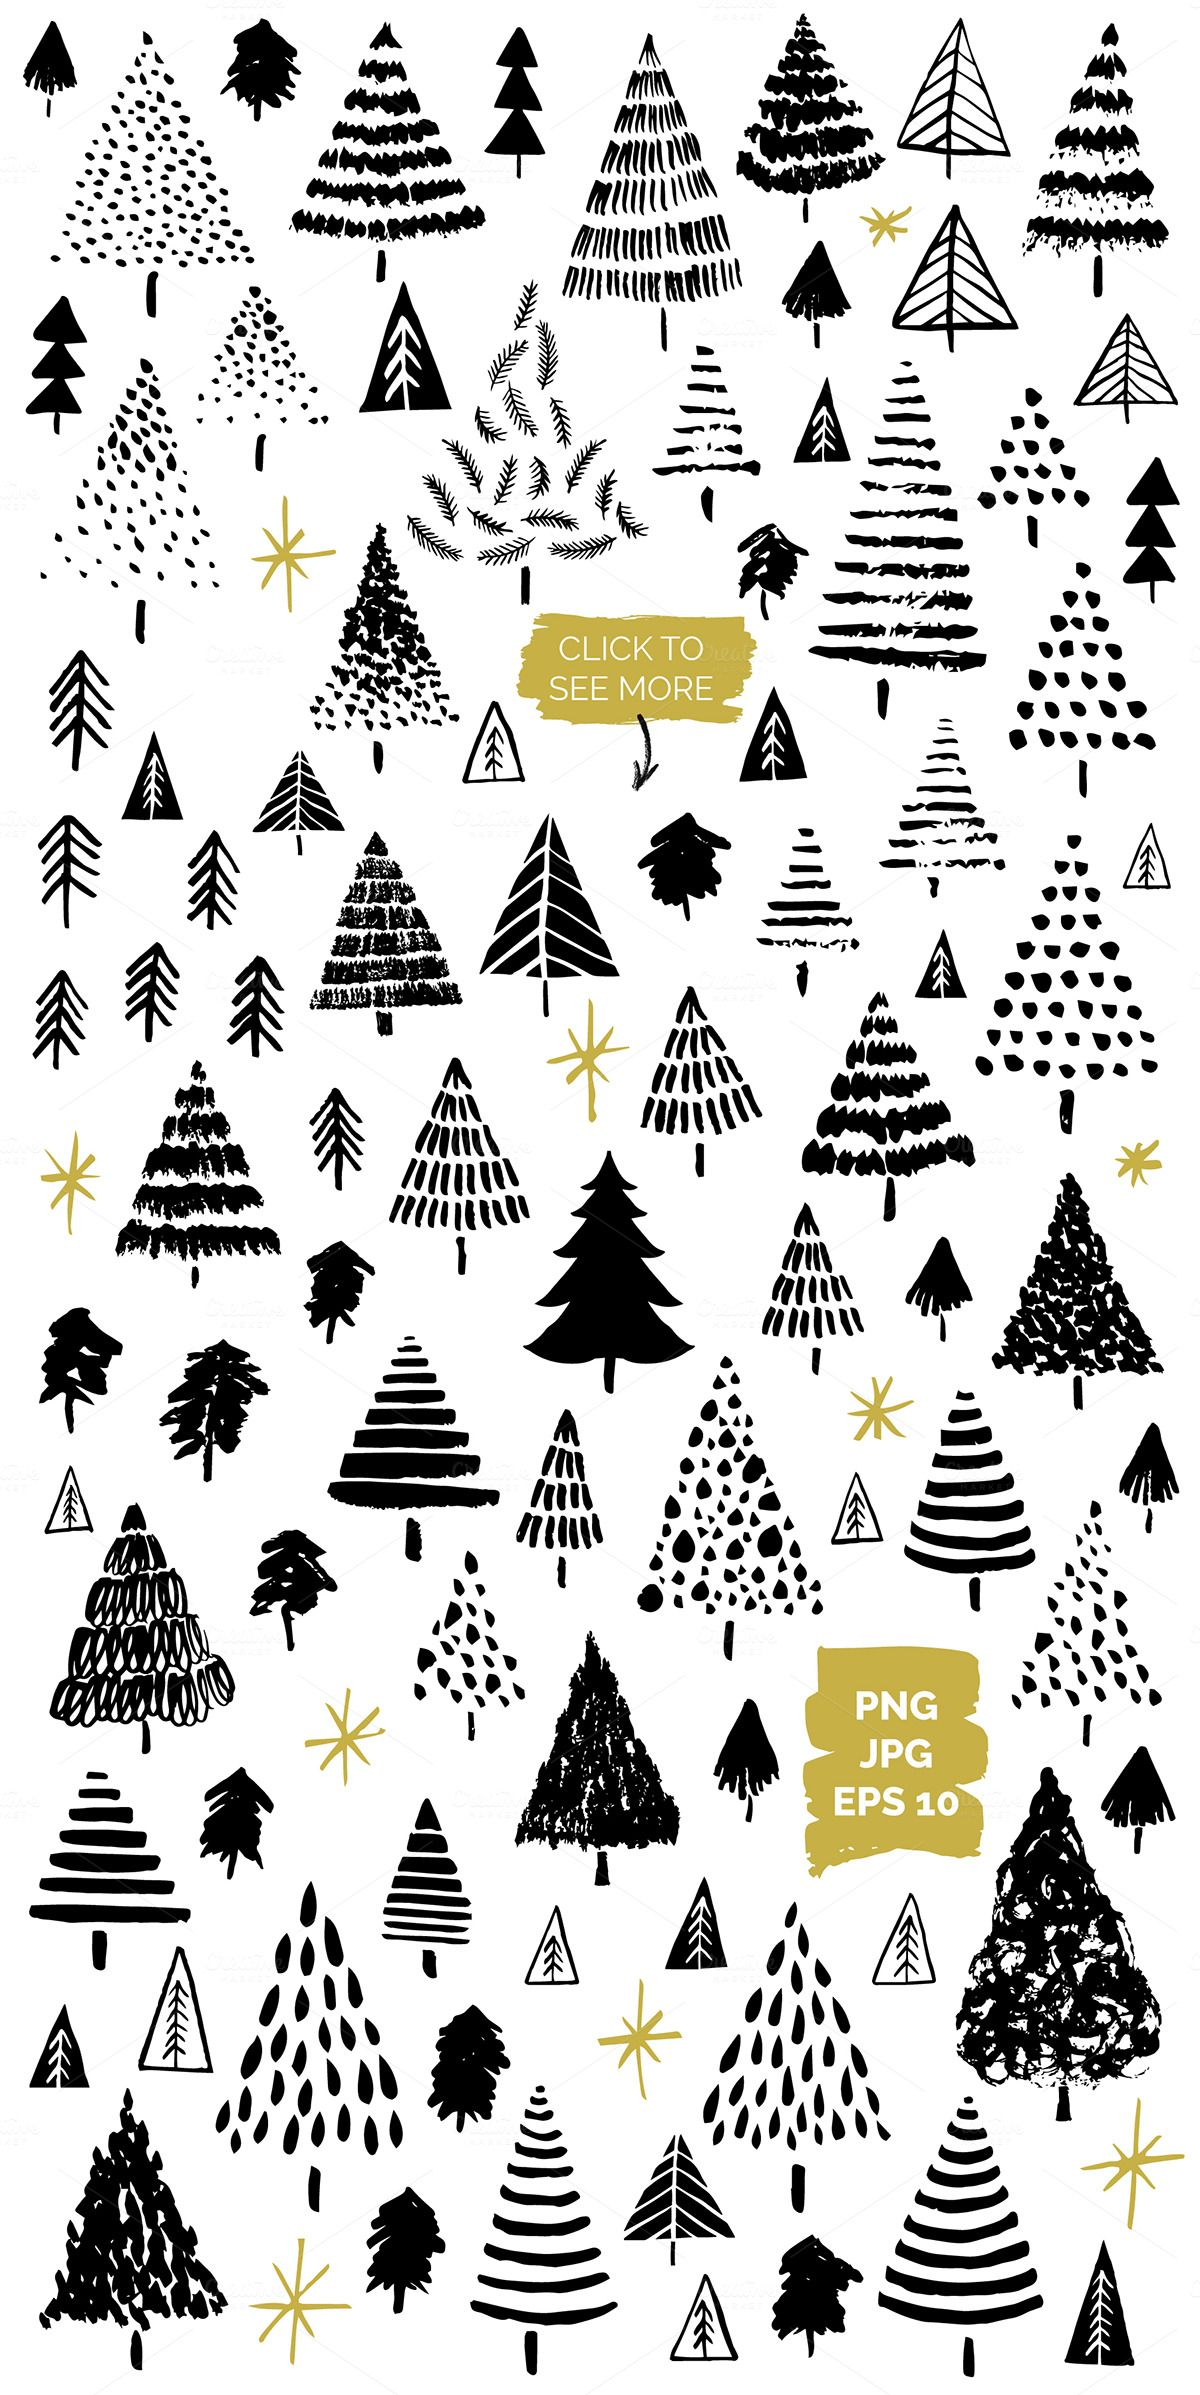 Christmas Trees Objects Patterns Christmas Tree Drawing Christmas Doodles Christmas Tree Design